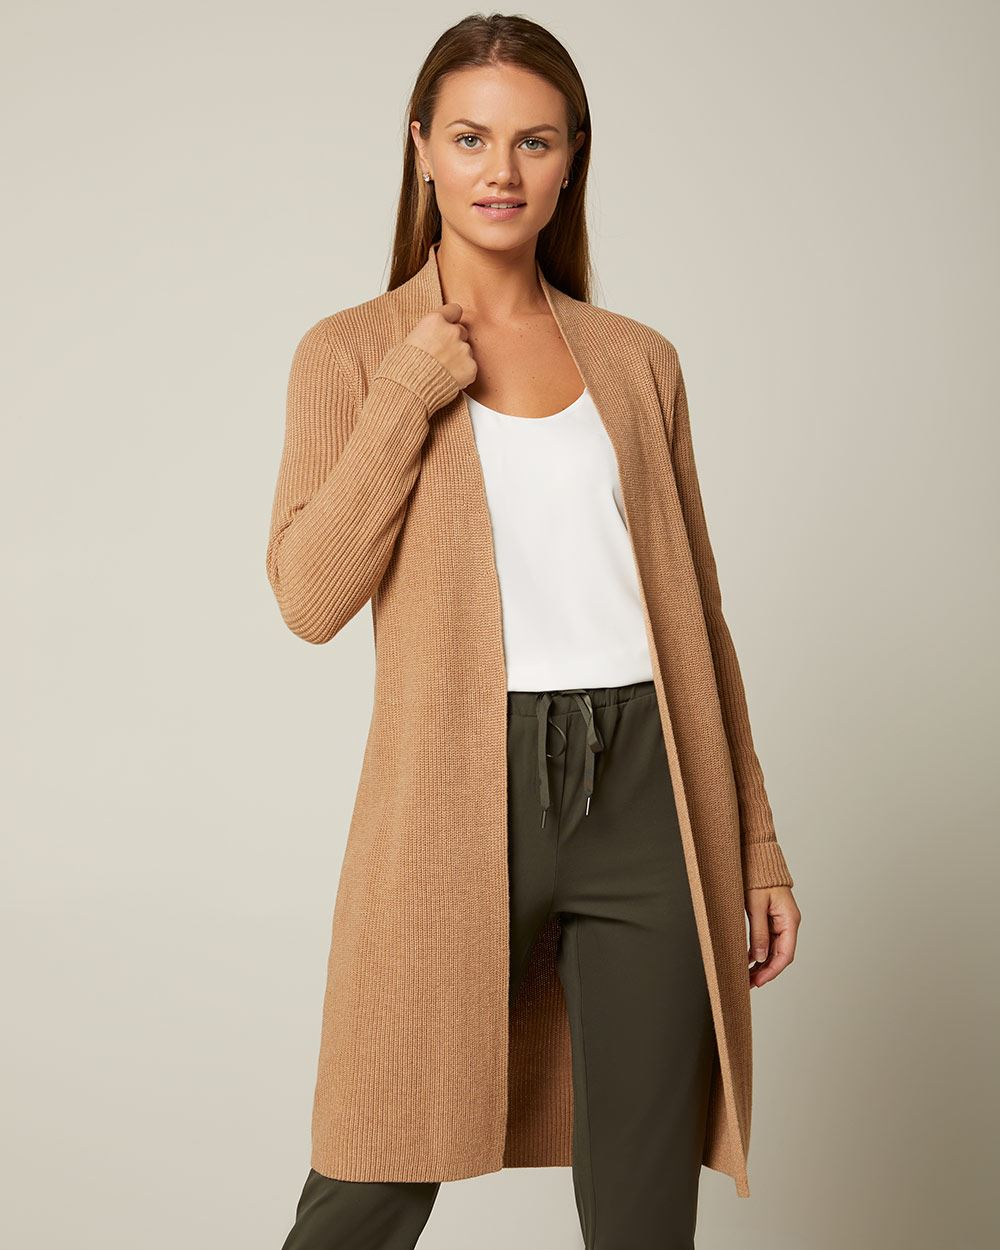 C&G Open-front duster cardigan